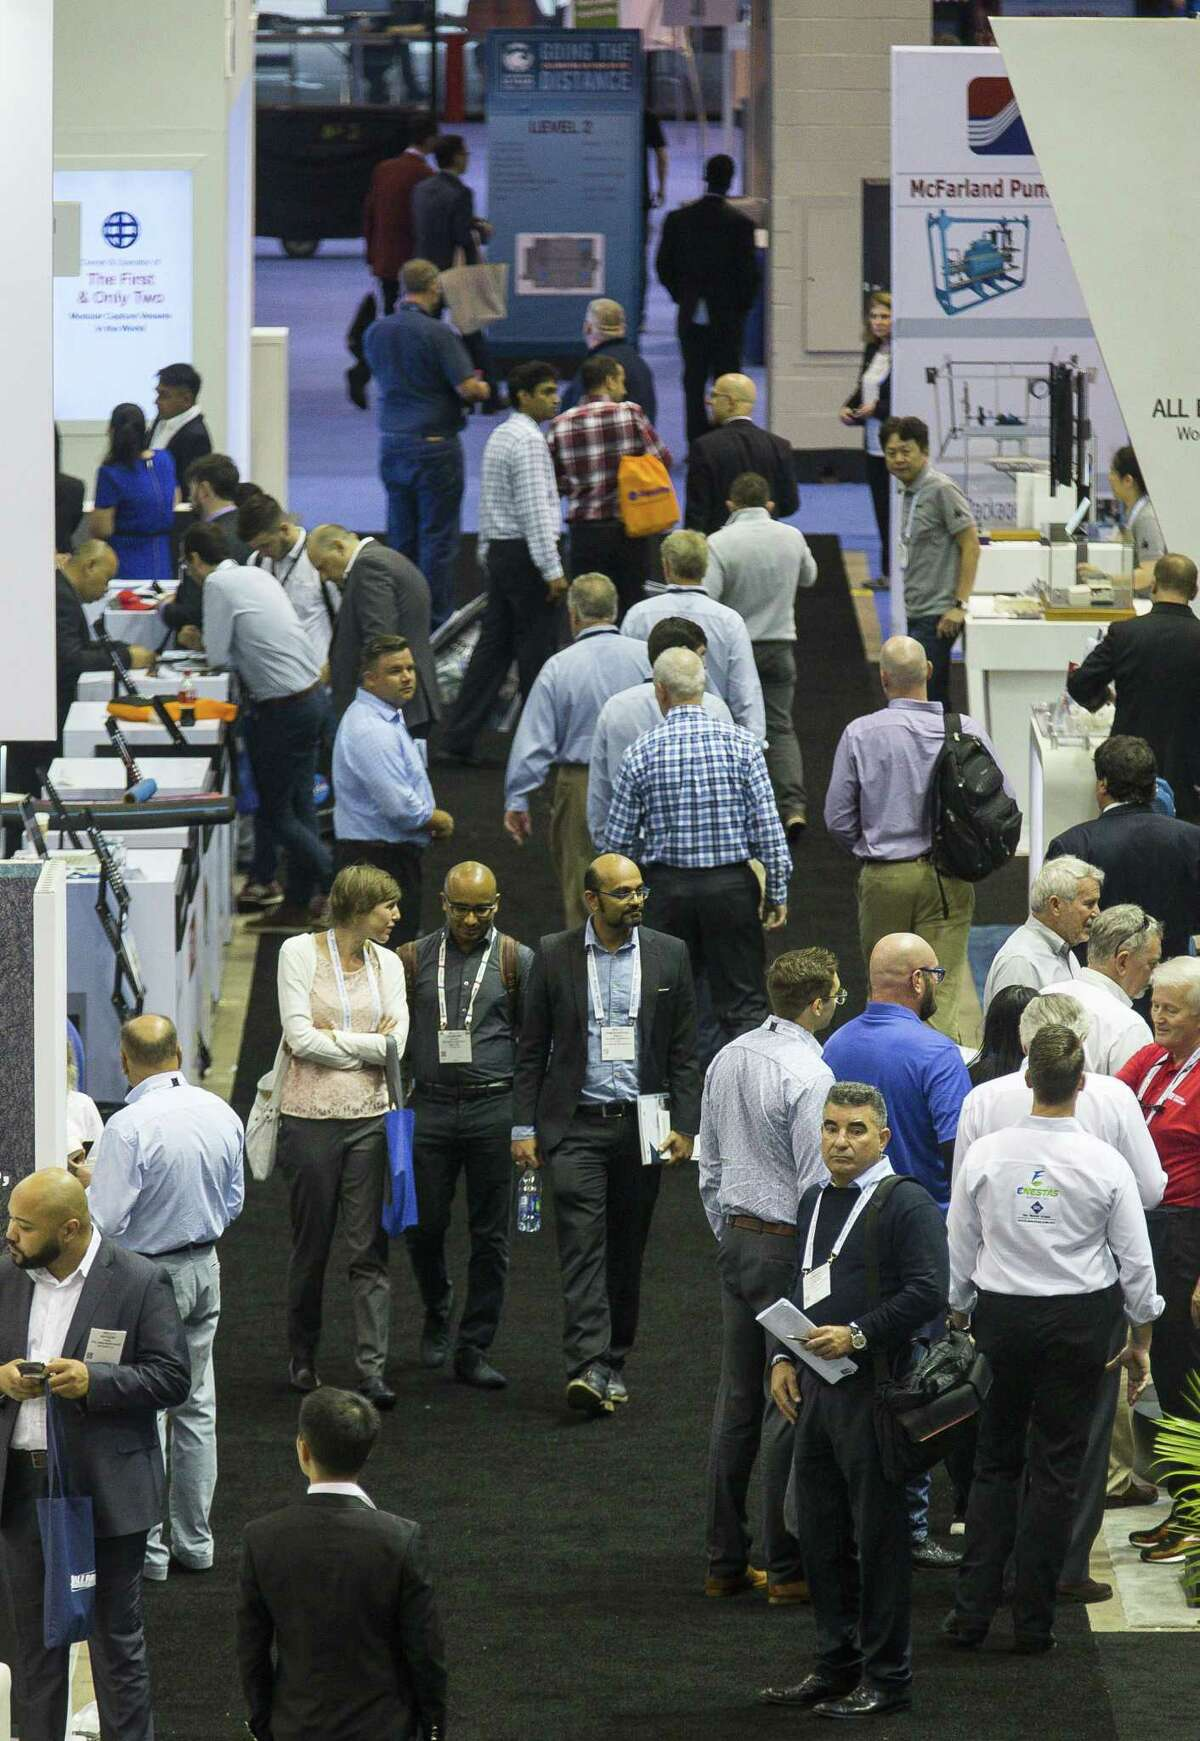 People walk through exhibits during the annual Offshore Technology Conference inside Houston's NRG Arena, Tuesday, May 7, 2019. Attendance fell this year to 59,200, the fifth consecutive year of participation decline. >>>See scenes from this year's conference ...